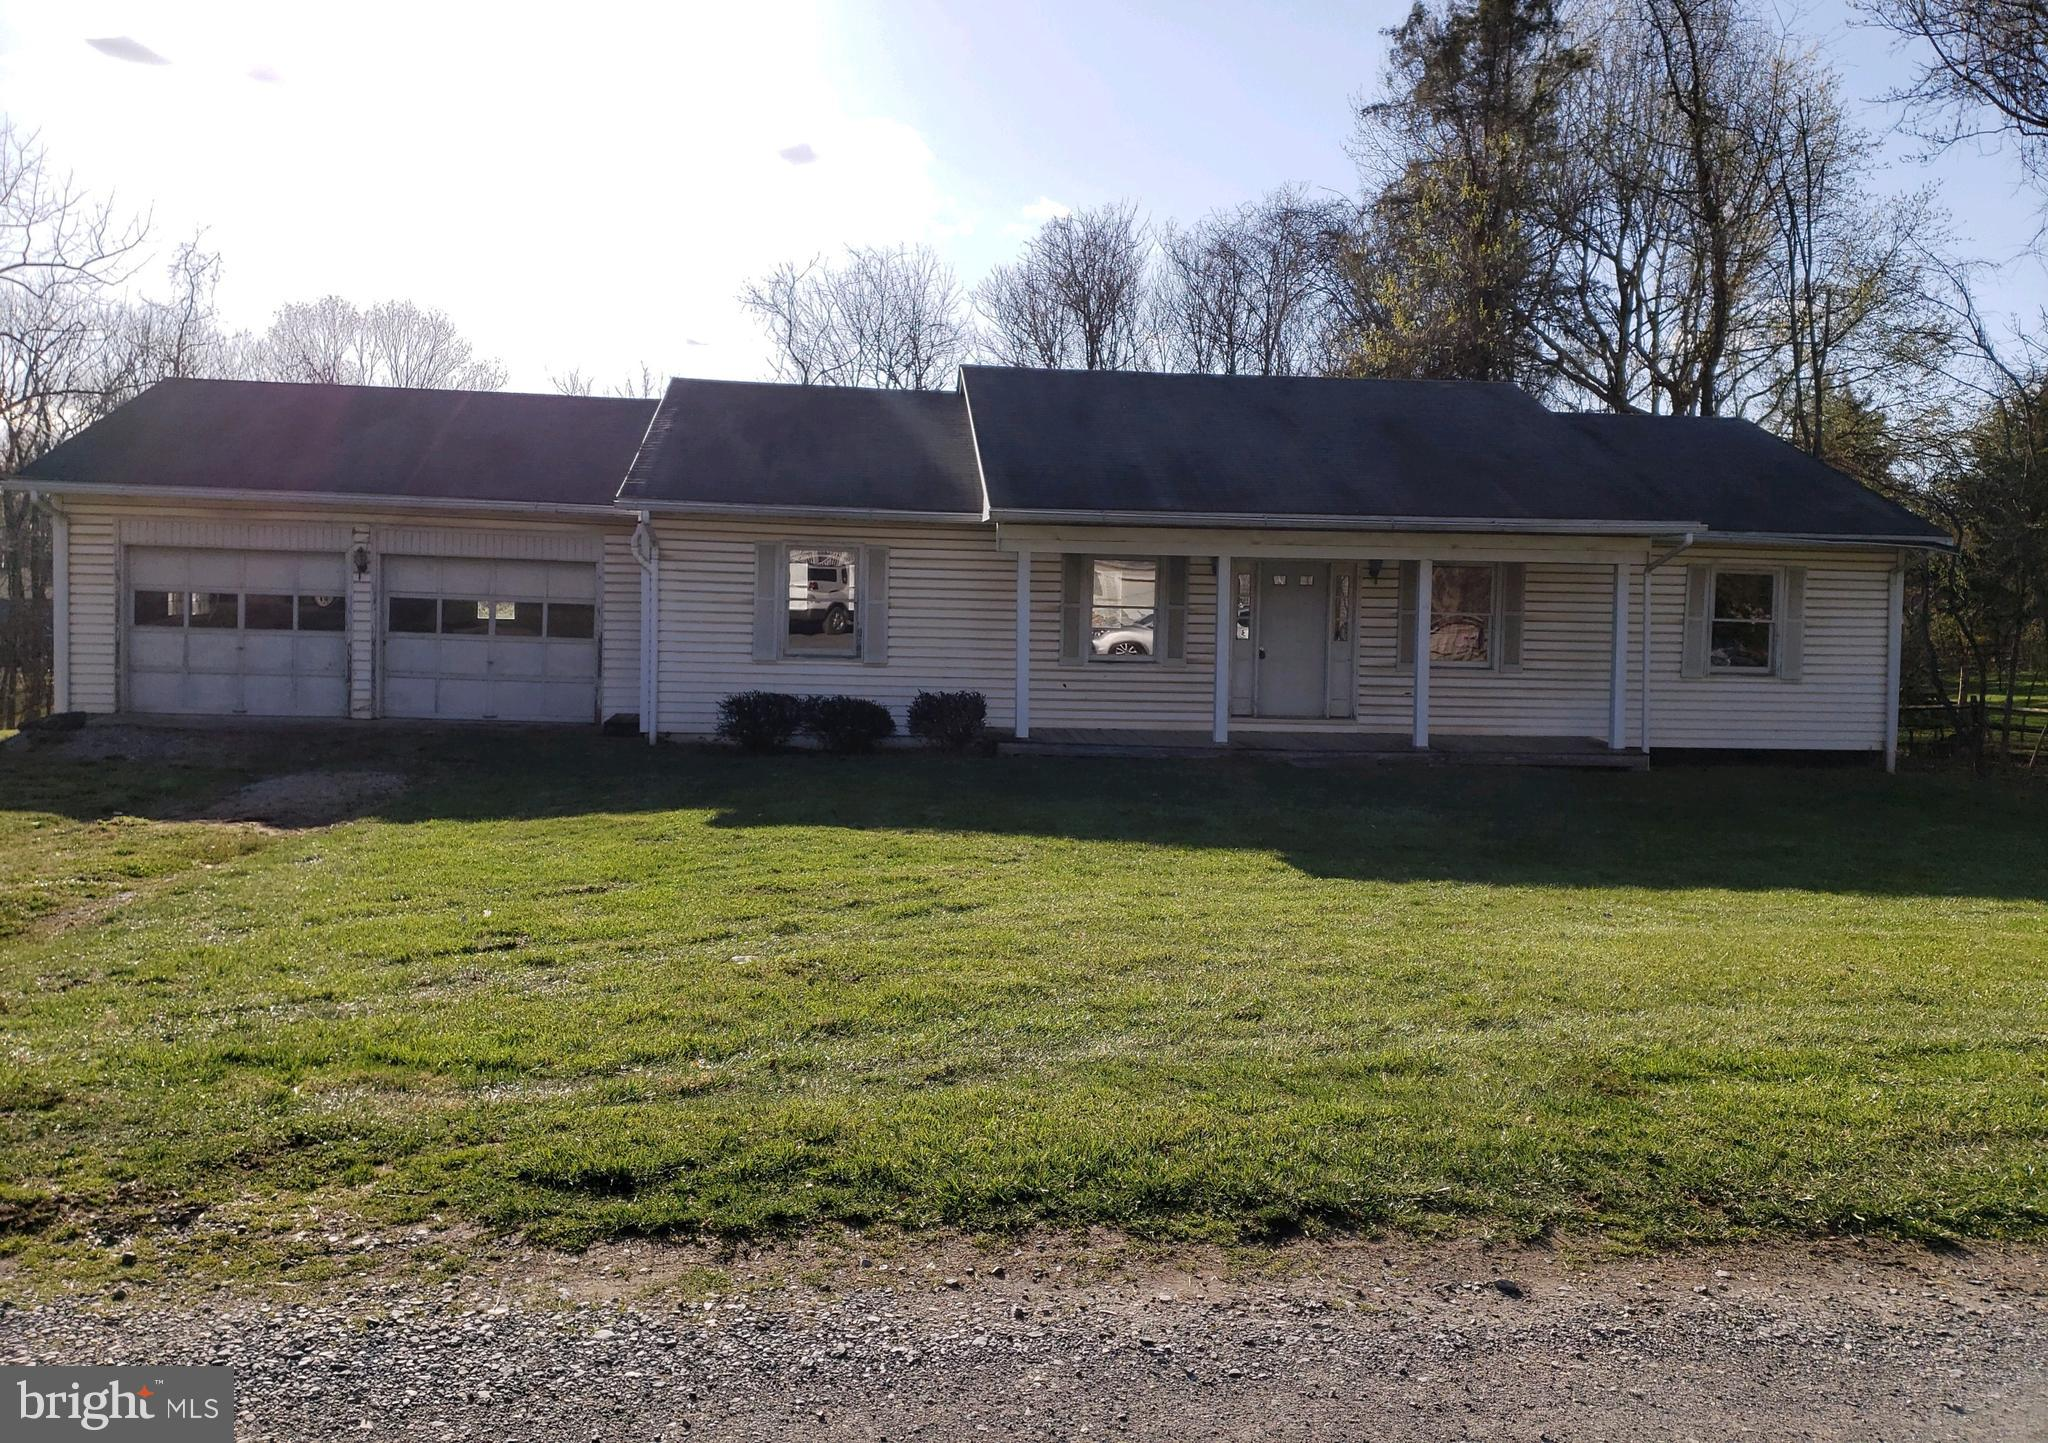 Rancher located in Blue Ridge Acres on a corner lot, 2 bedrooms, 2 bathrooms, full unfinished basement, attached 2 car garage and a covered front porch.  Offers due Monday 4/12/21 by  9am